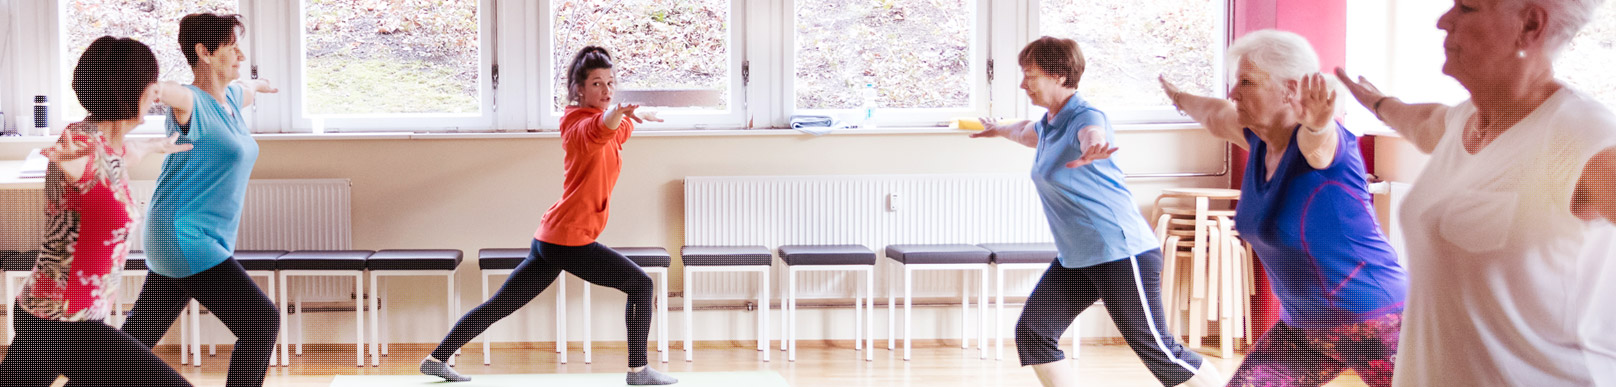 Reha-Sport in der physiobalance Berlin